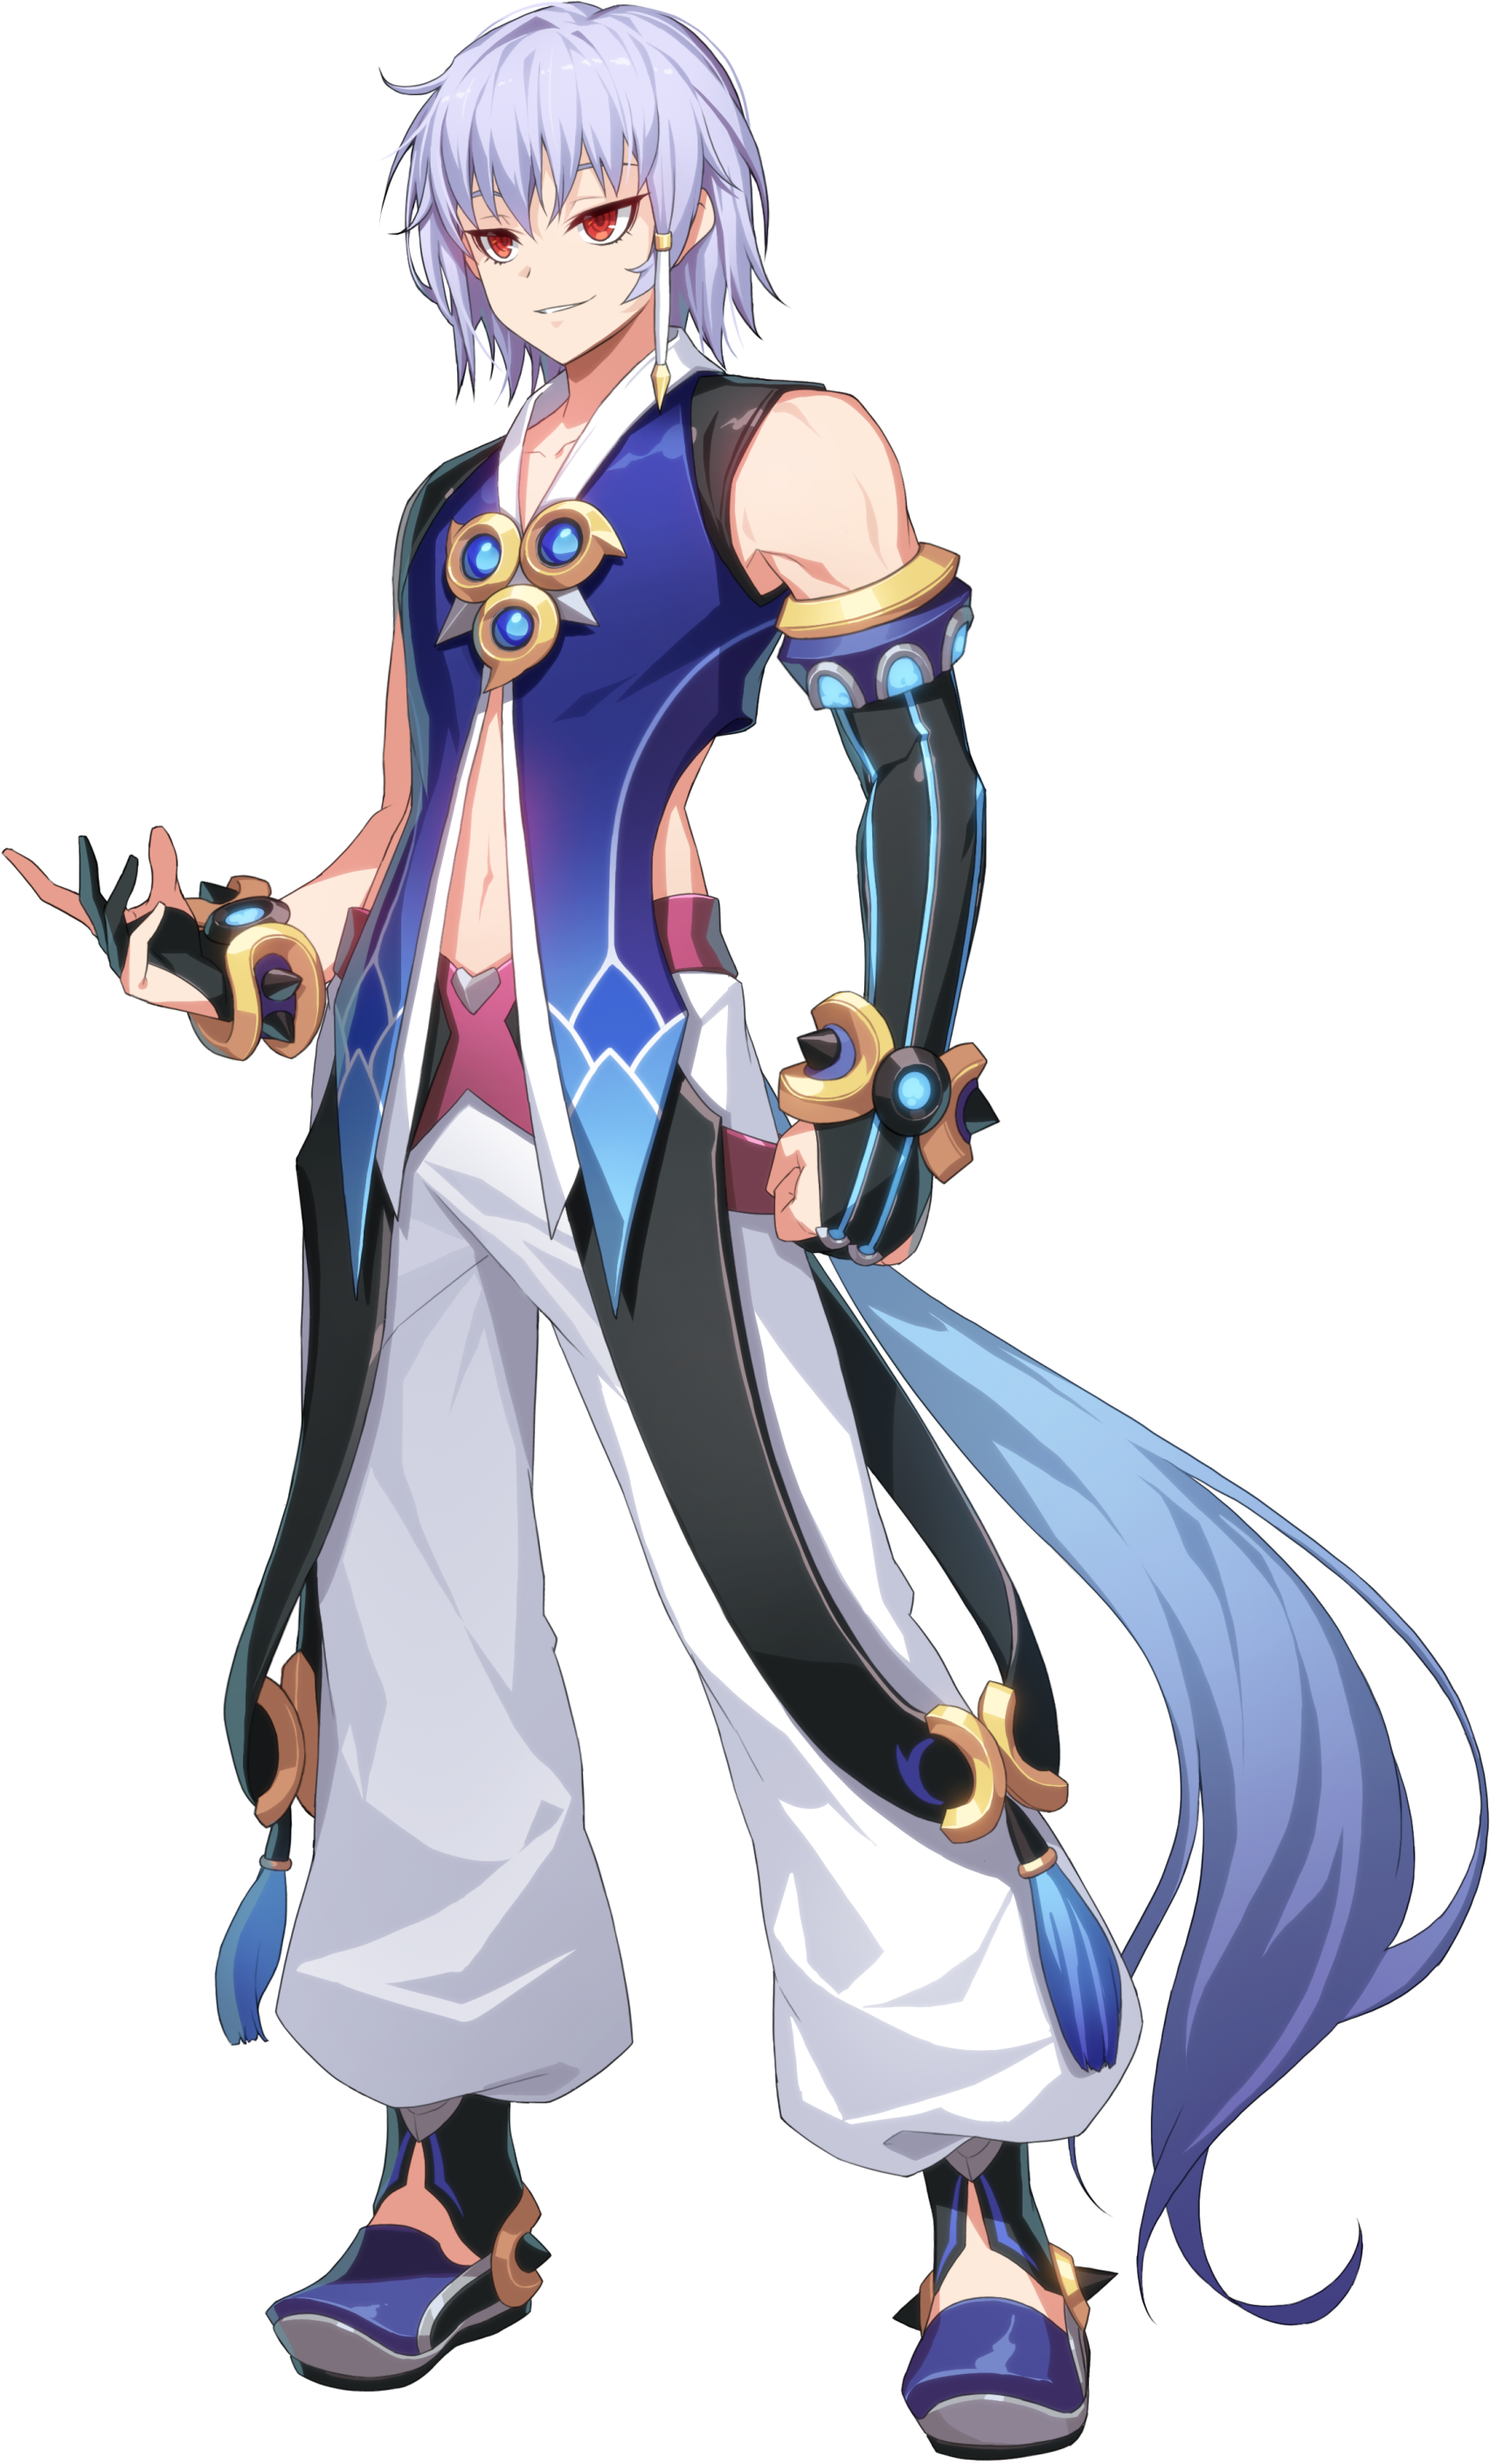 Asin/Grand Chase Dimensional Chaser | Grand Chase Wiki